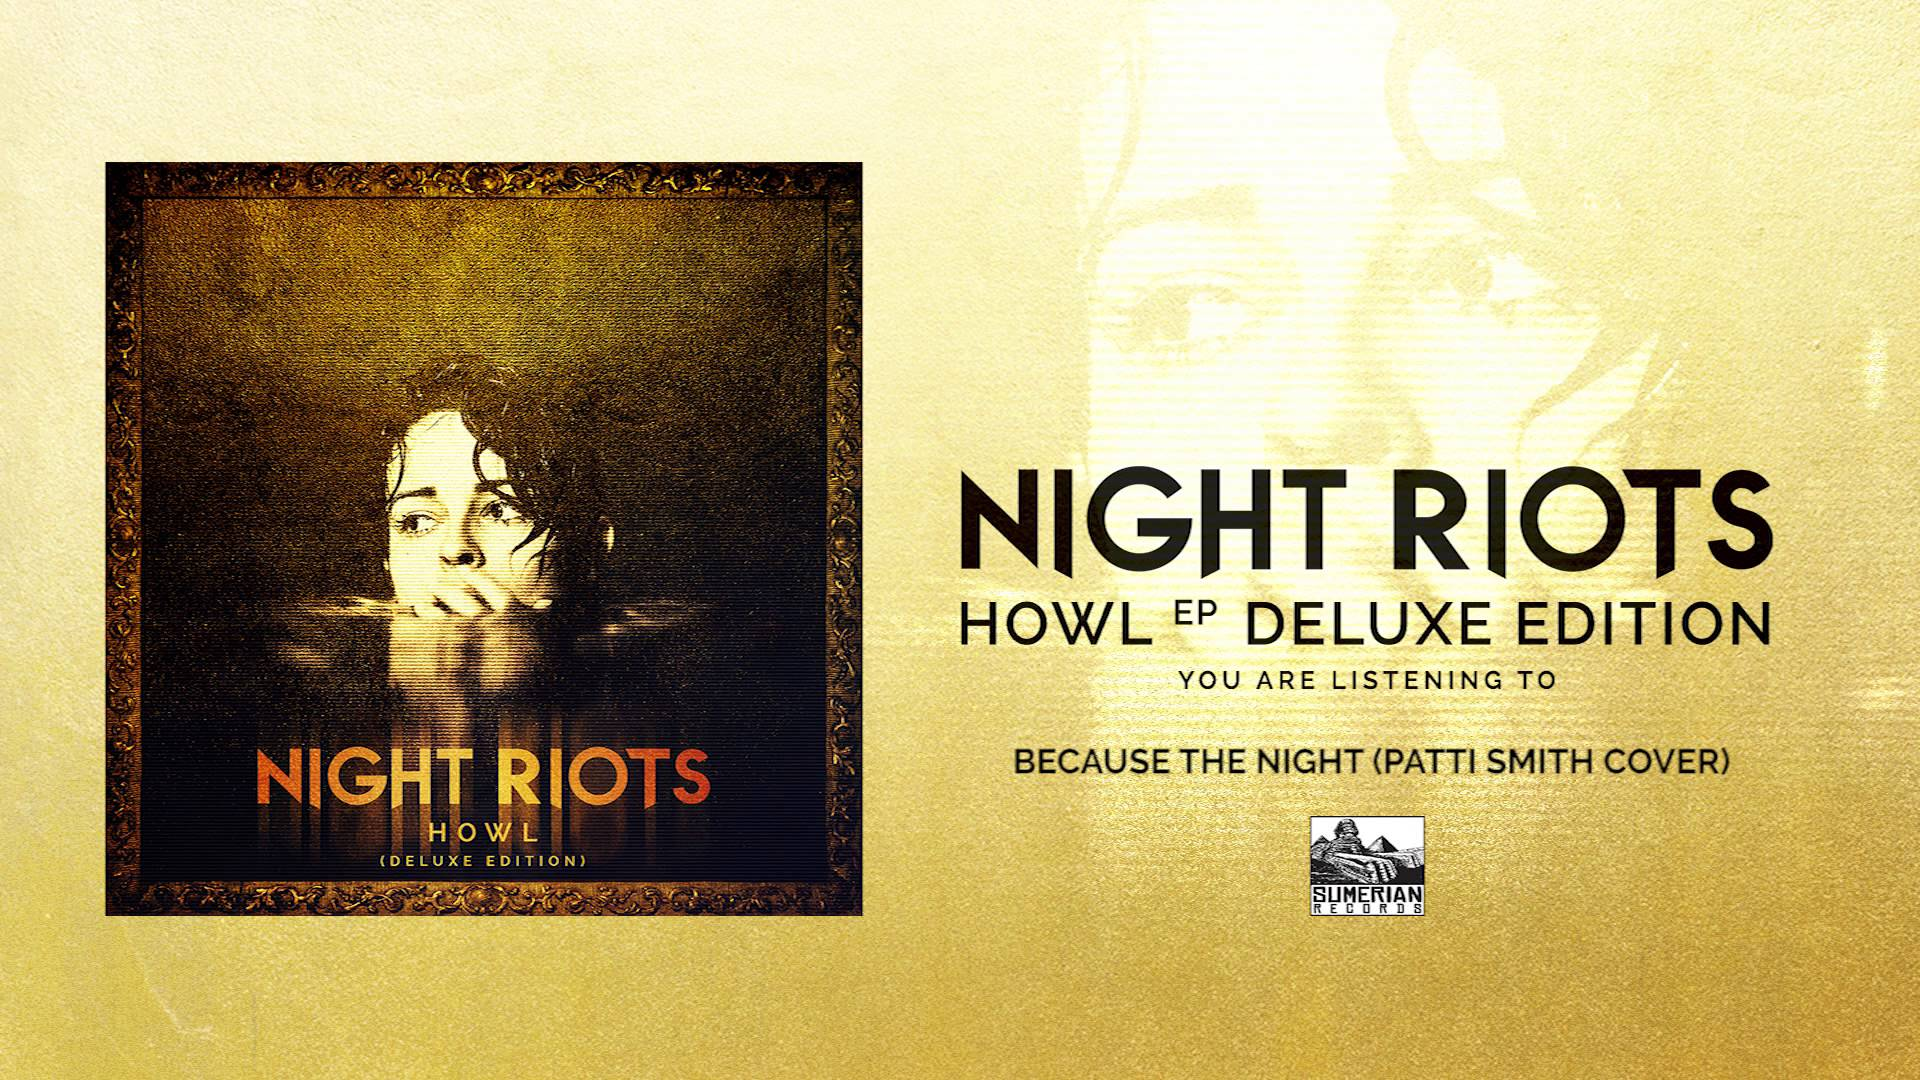 NIGHT RIOTS - Because The Night (Patti Smith Cover)